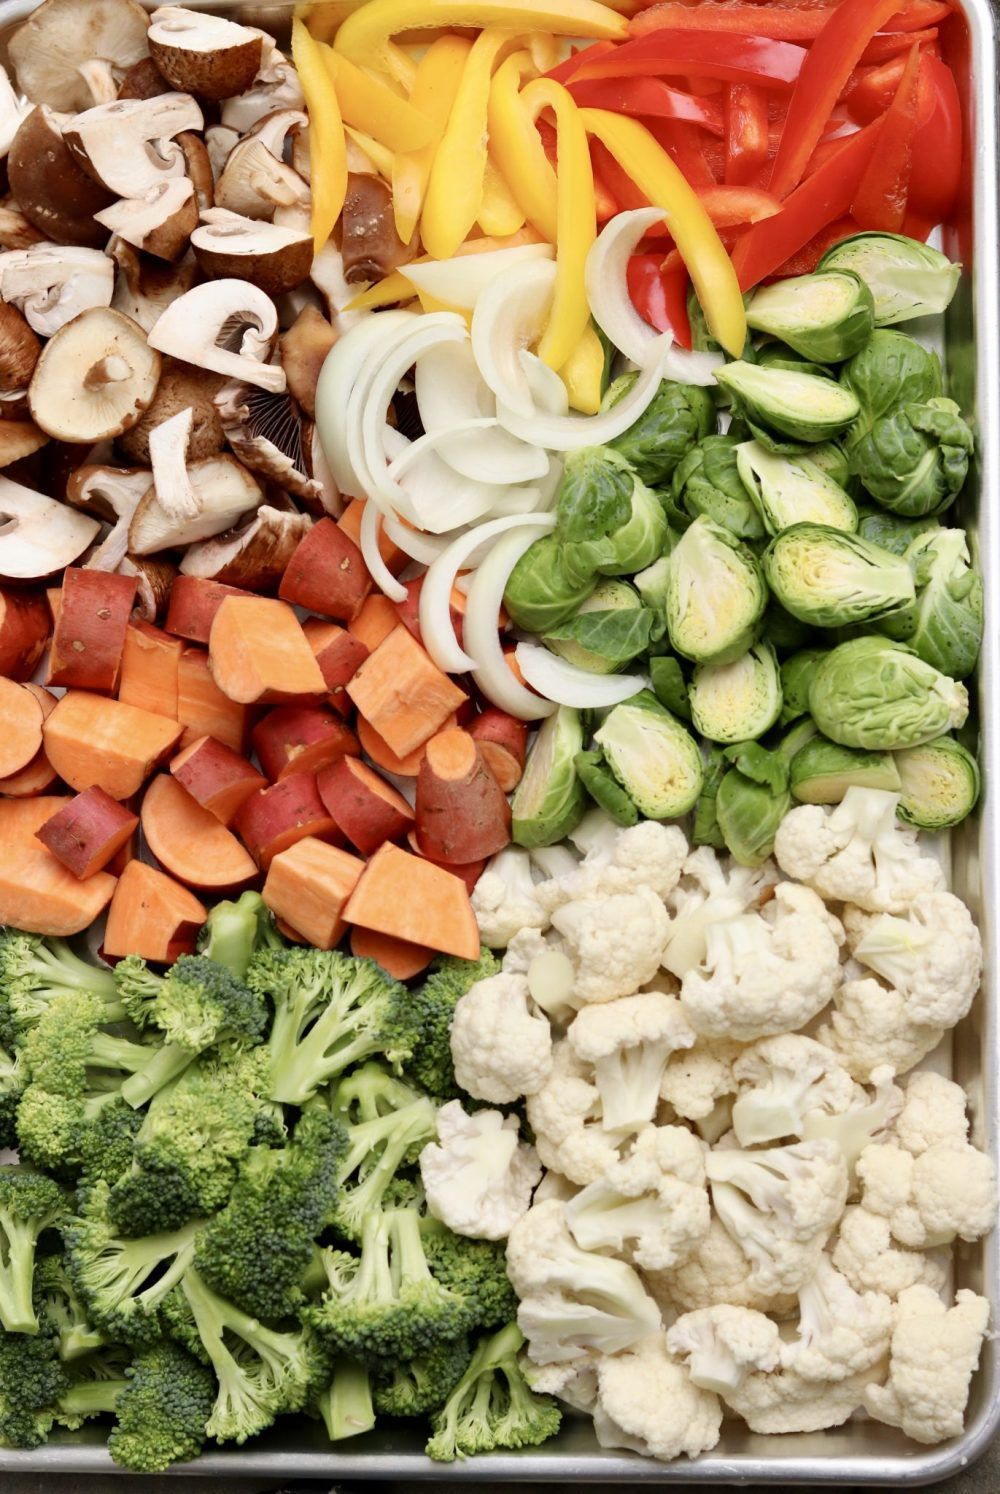 This convenient guide offers cooking times, temperatures, helpful hints and lots of delicious ideas to make the most of inexpensive, healthy, versatile veggies!